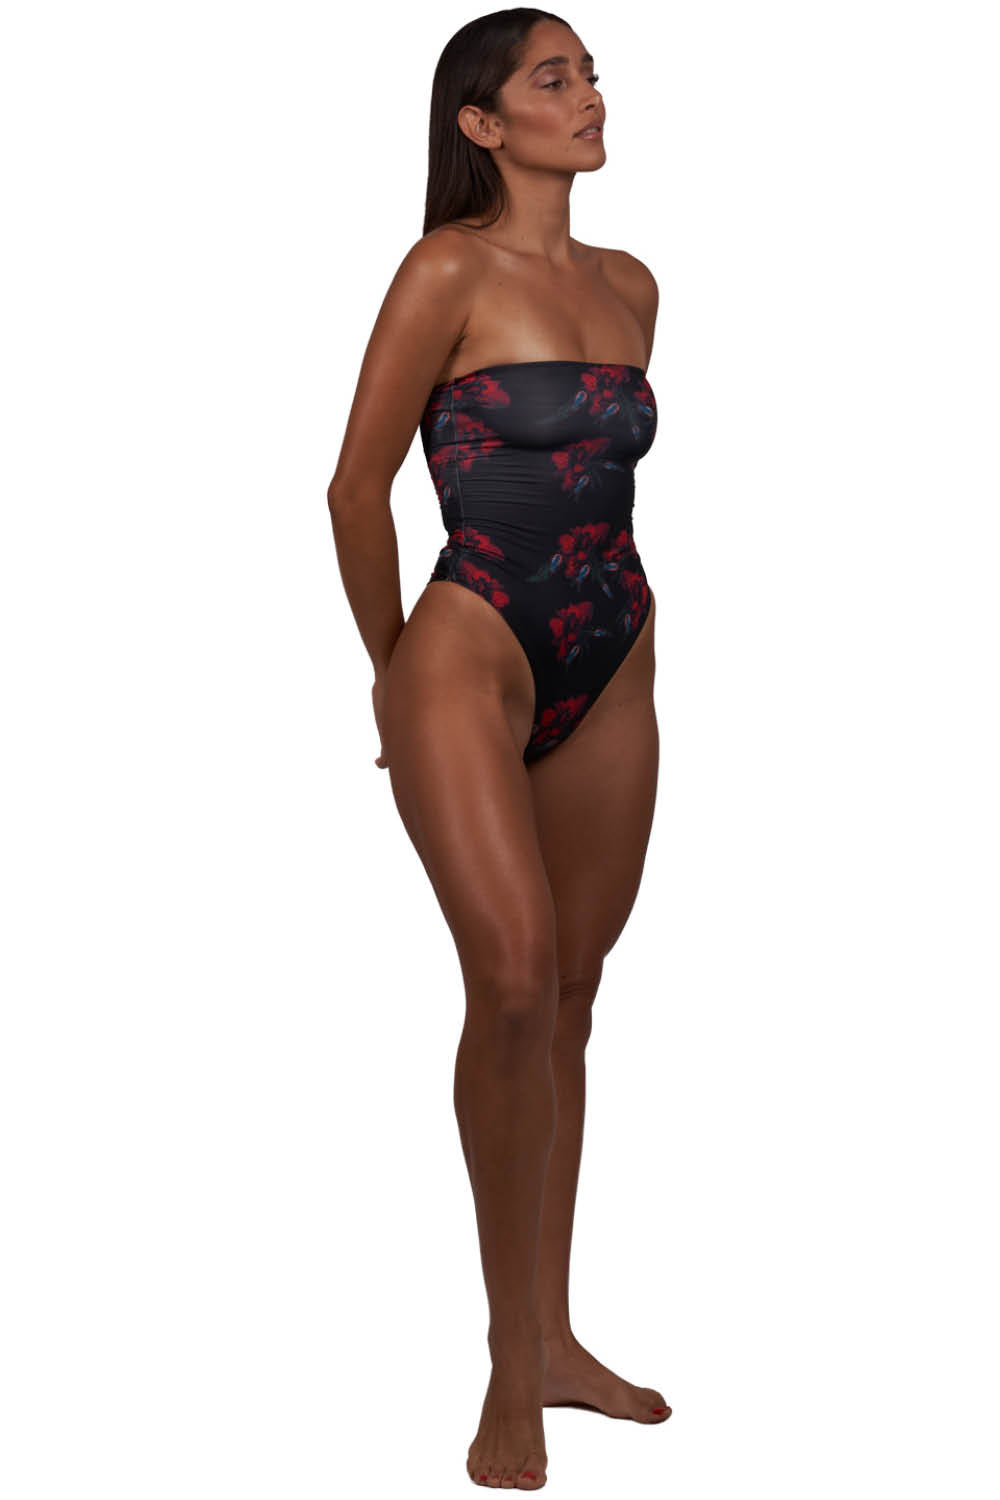 Nylah One Piece Swimsuit in Black, Red and Blue Bugs